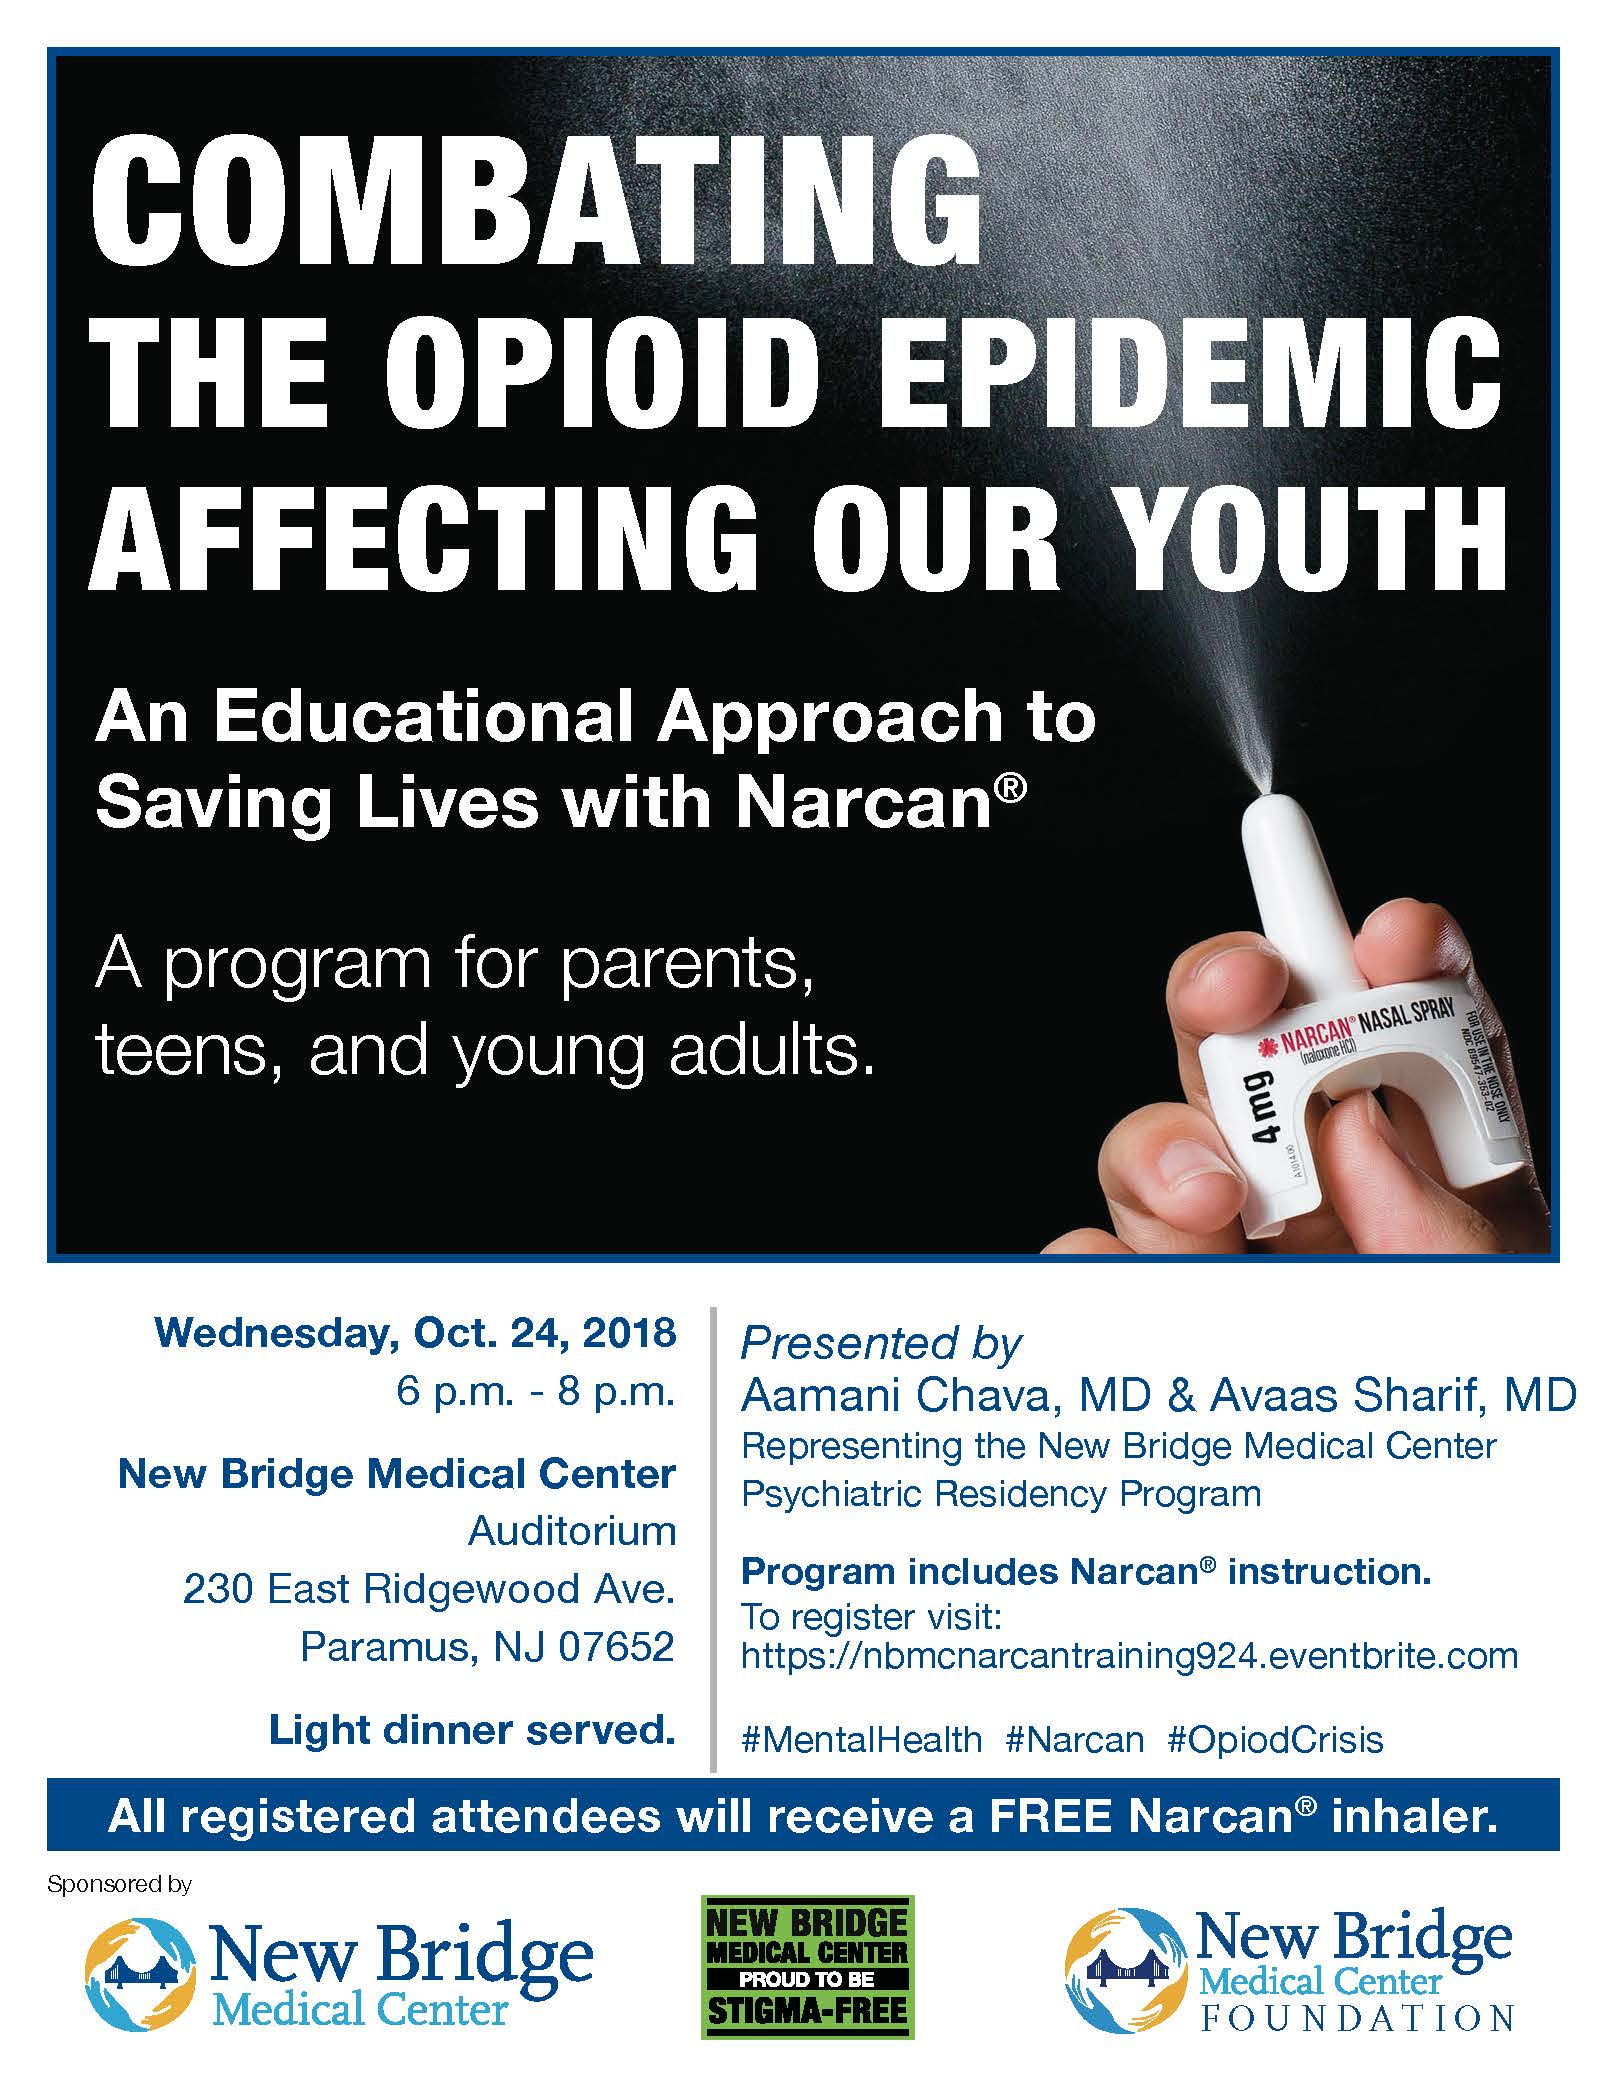 Combating Opioid Epidemic 20181024